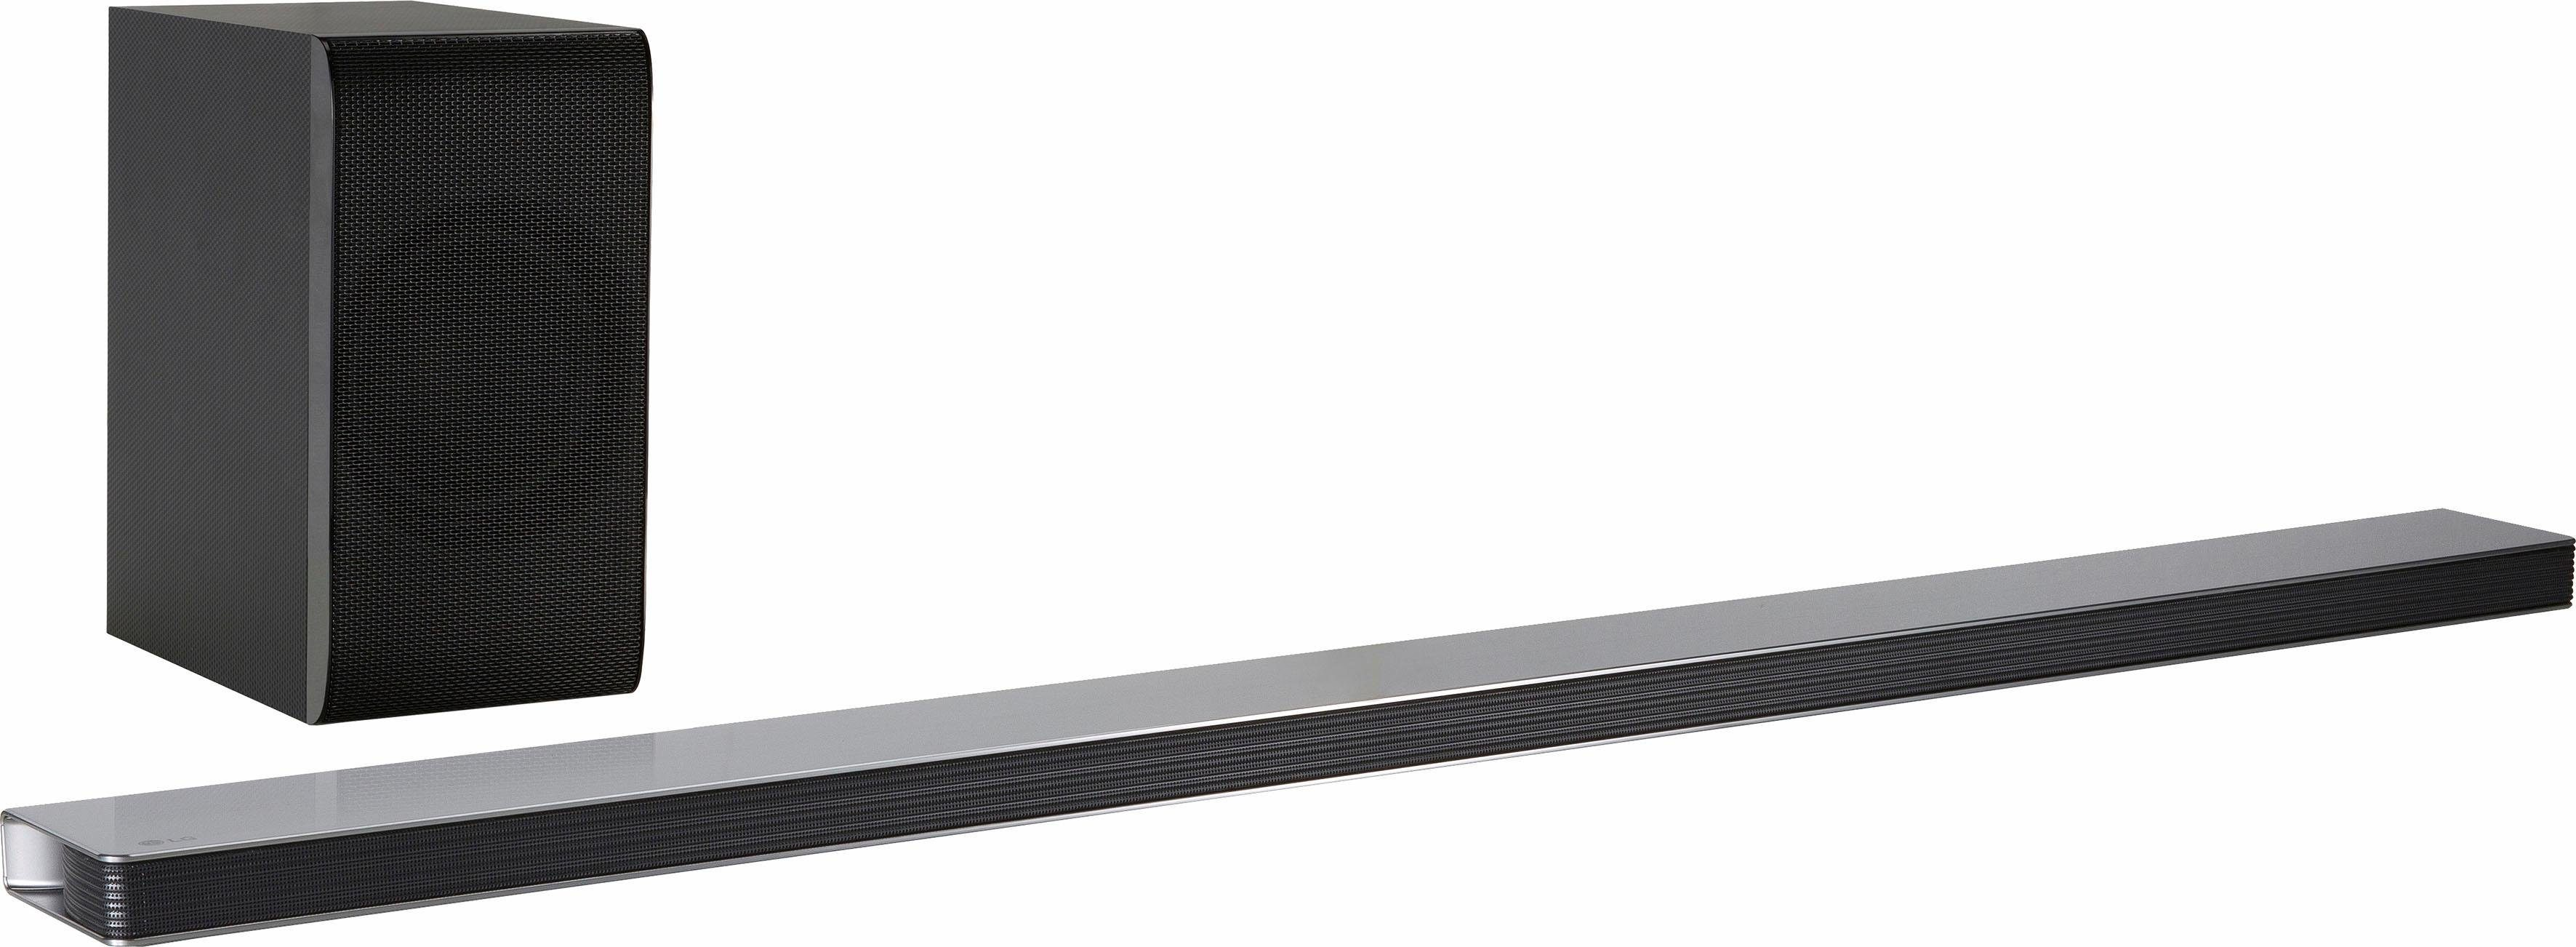 LG SJ8 Soundbar (Hi-Res, Multiroom, Bluetooth, WiFi, Spotify)